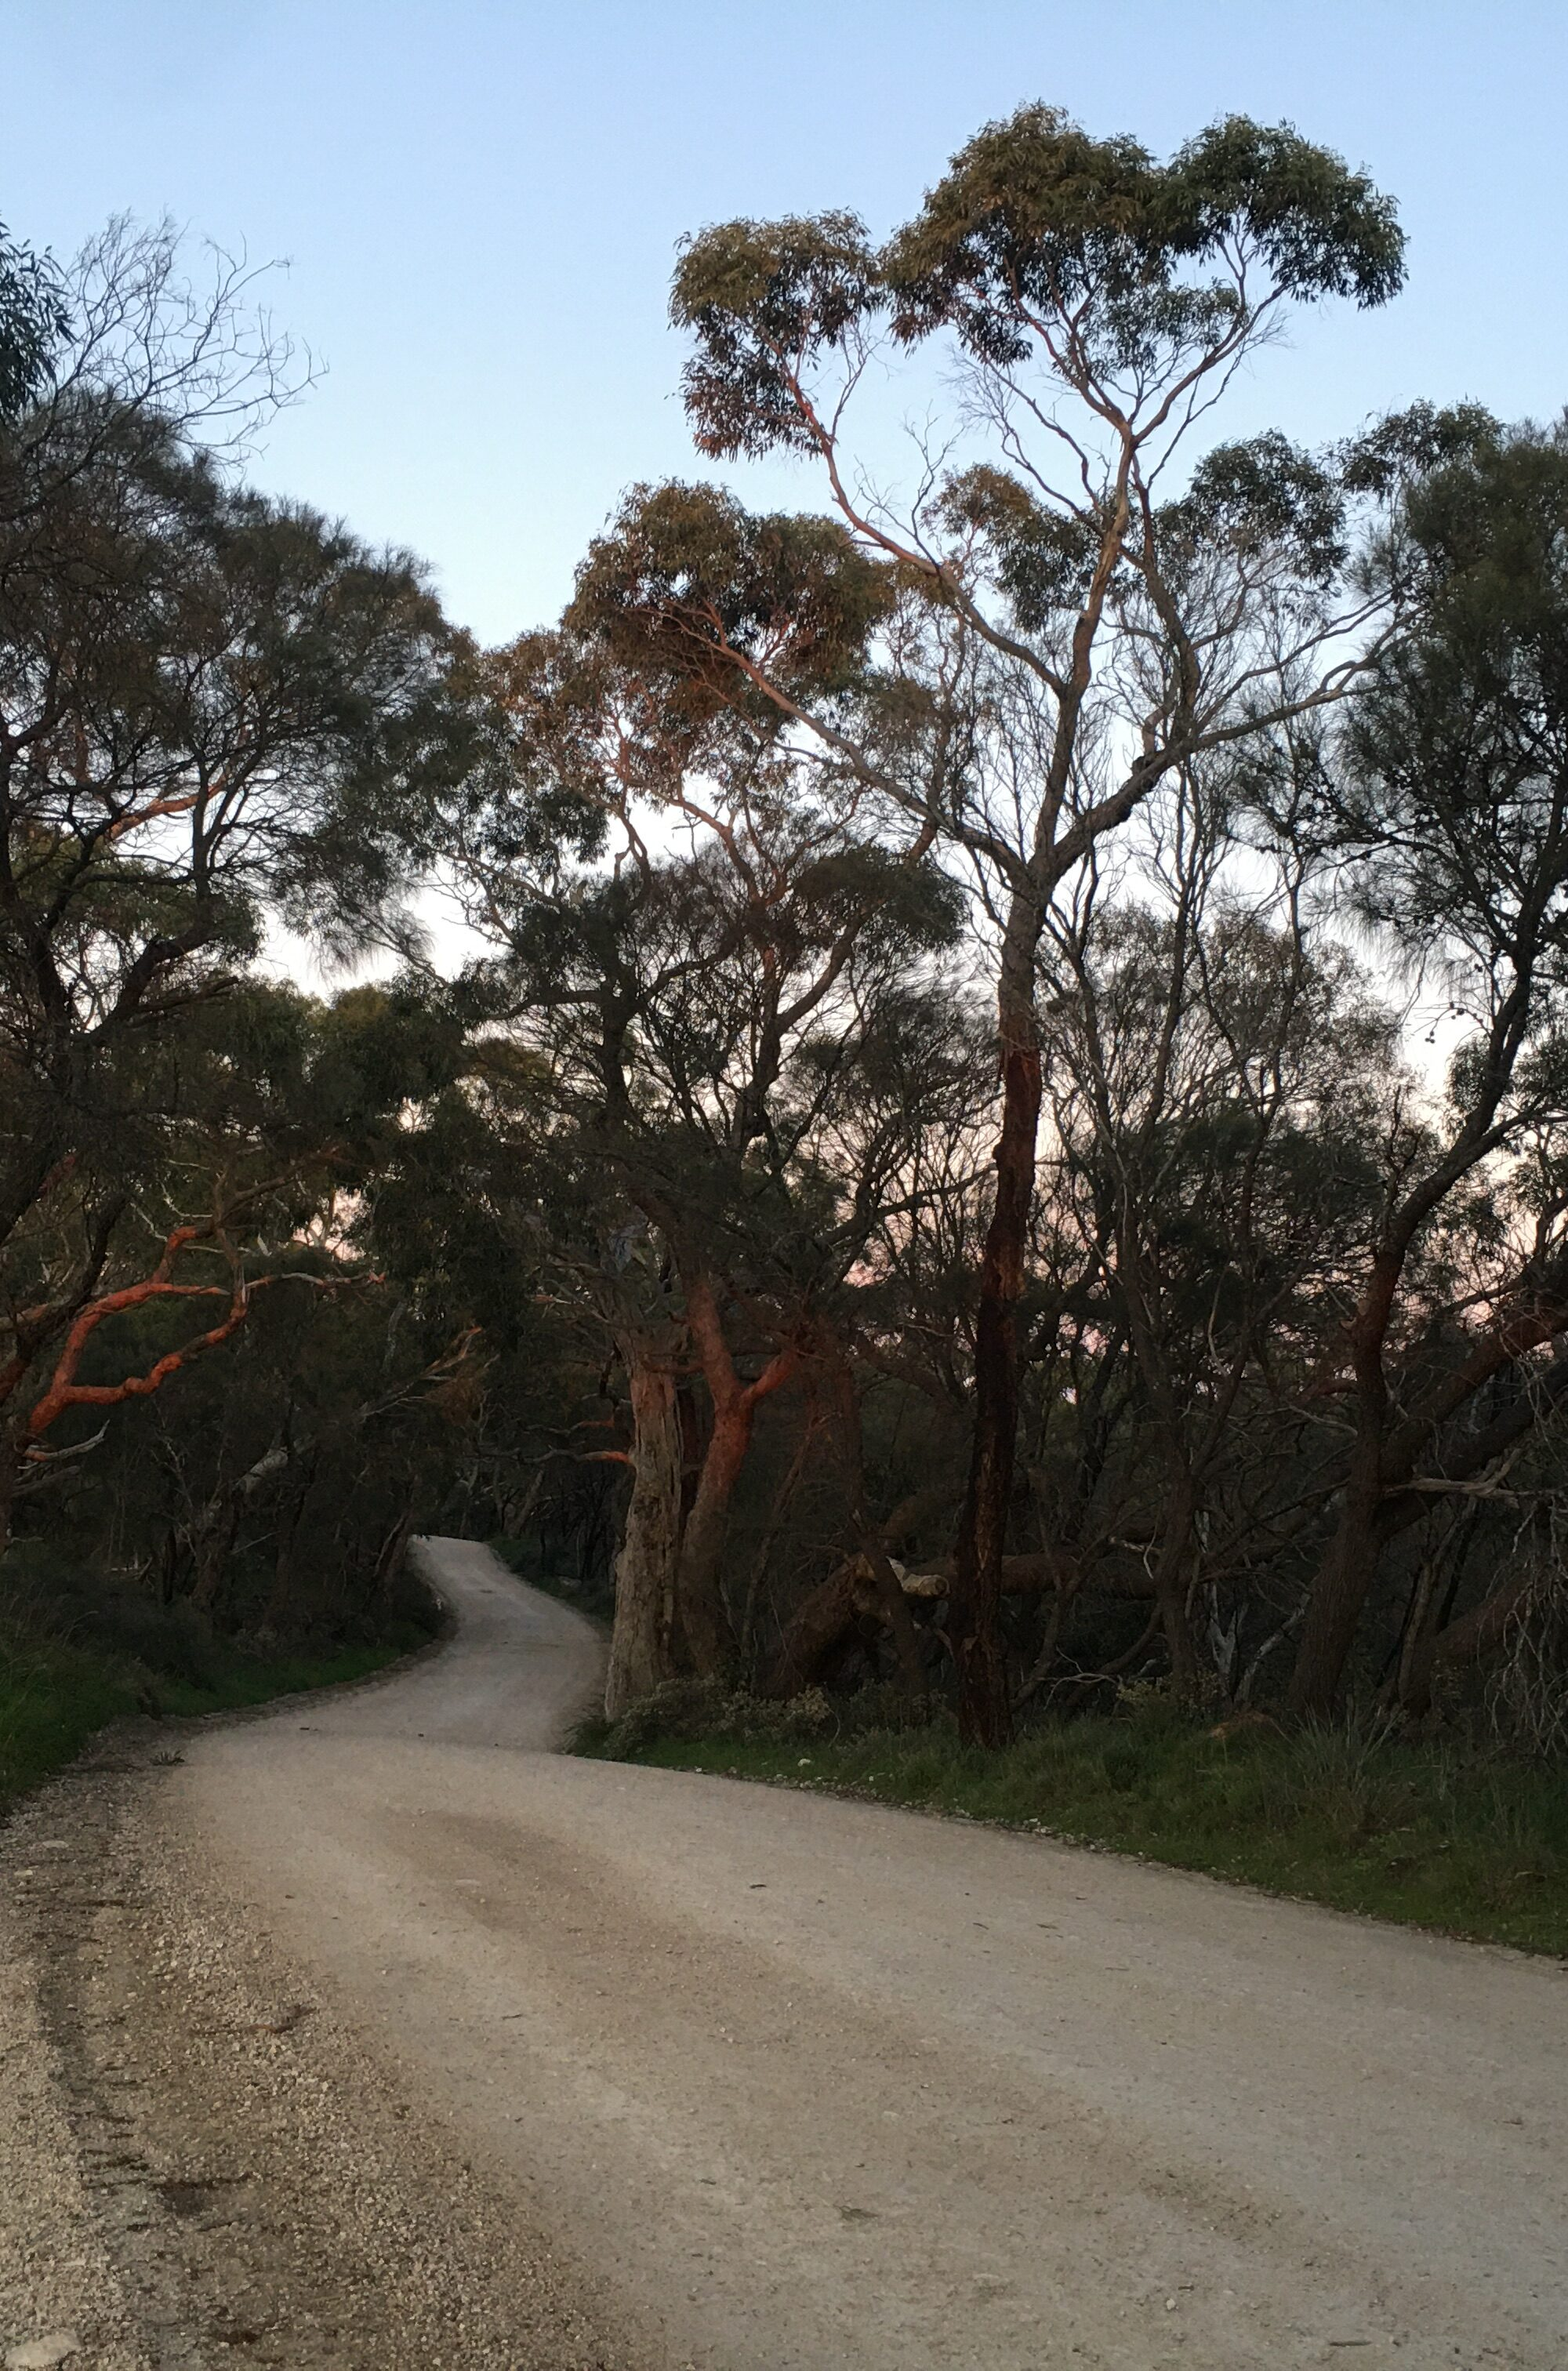 Late afternoon in the Adelaide Hills